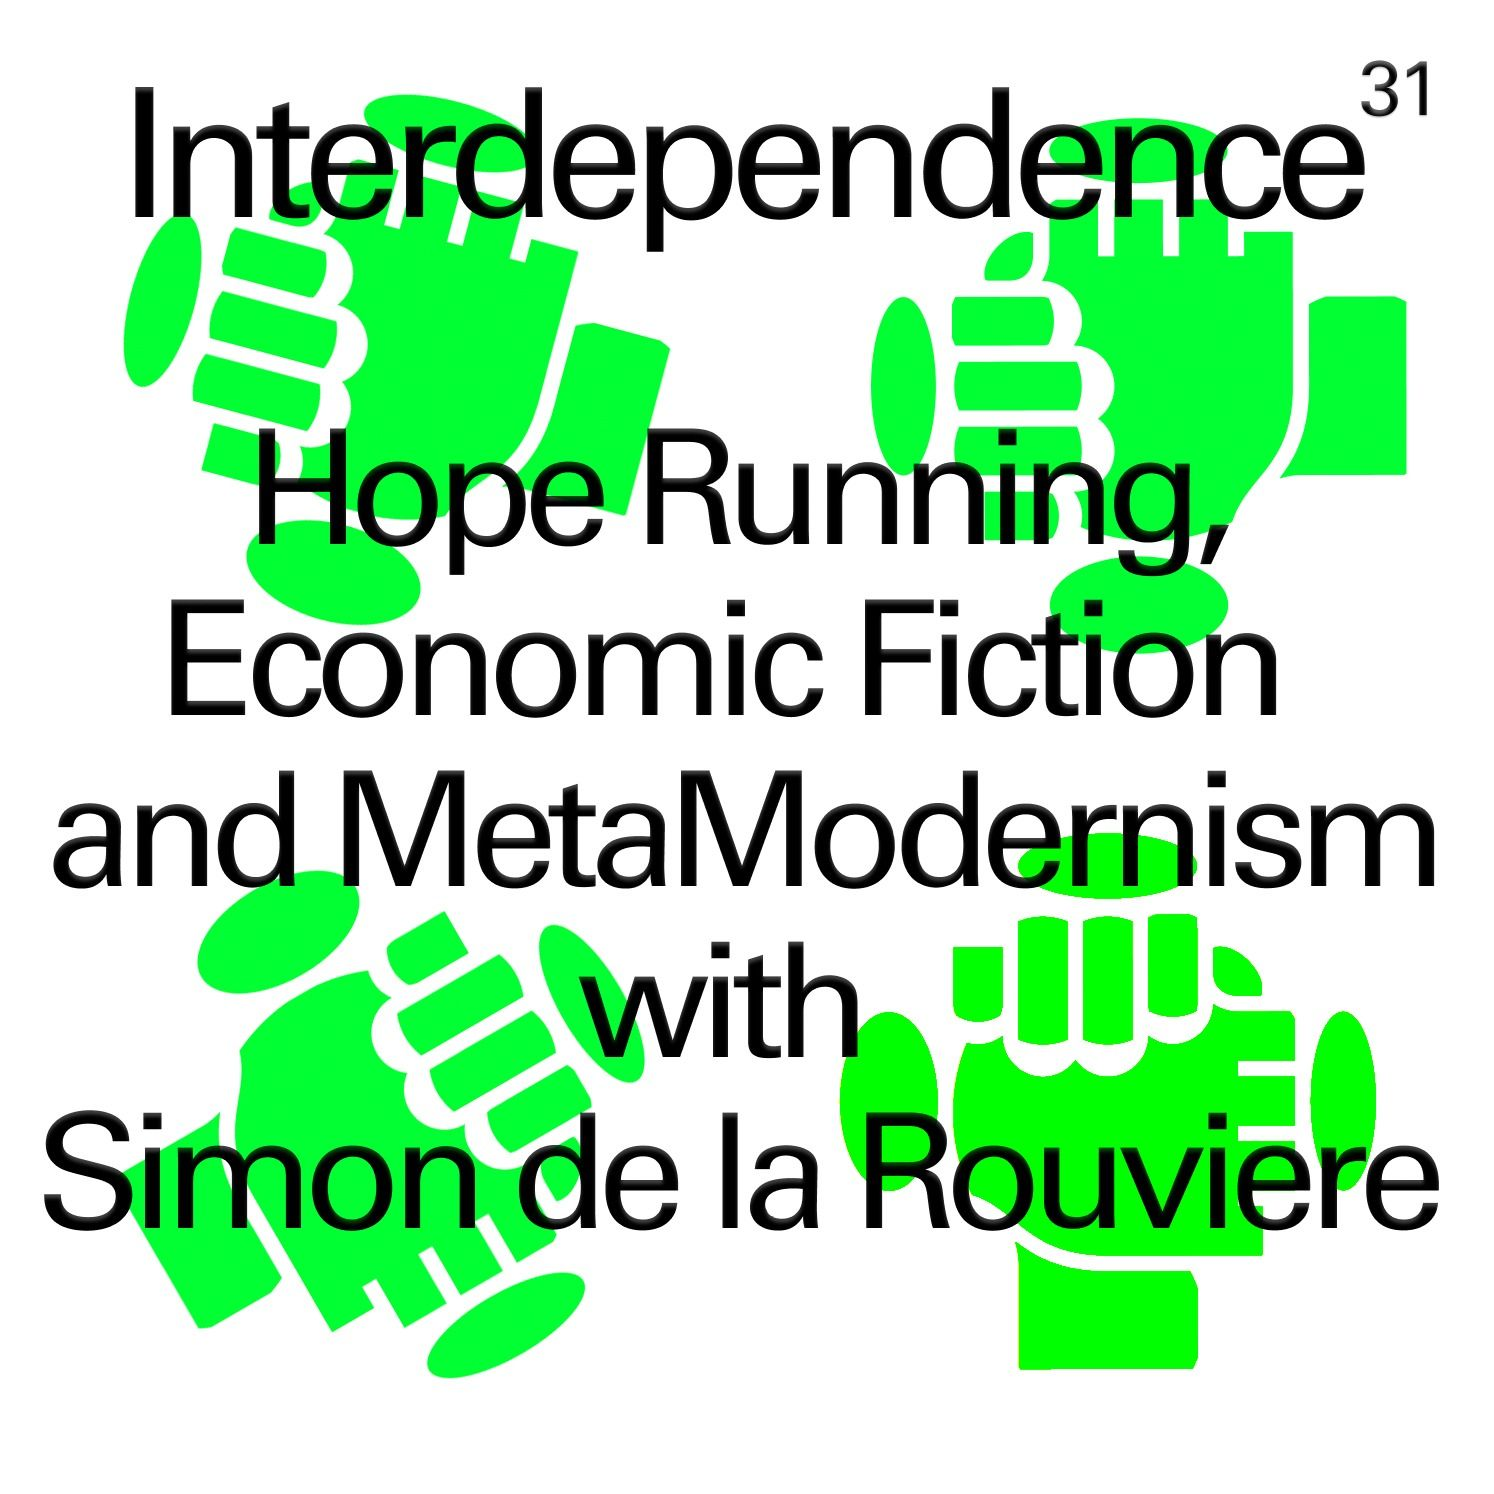 Hope Running, Economic Fiction and MetaModernism with Simon de la Rouviere